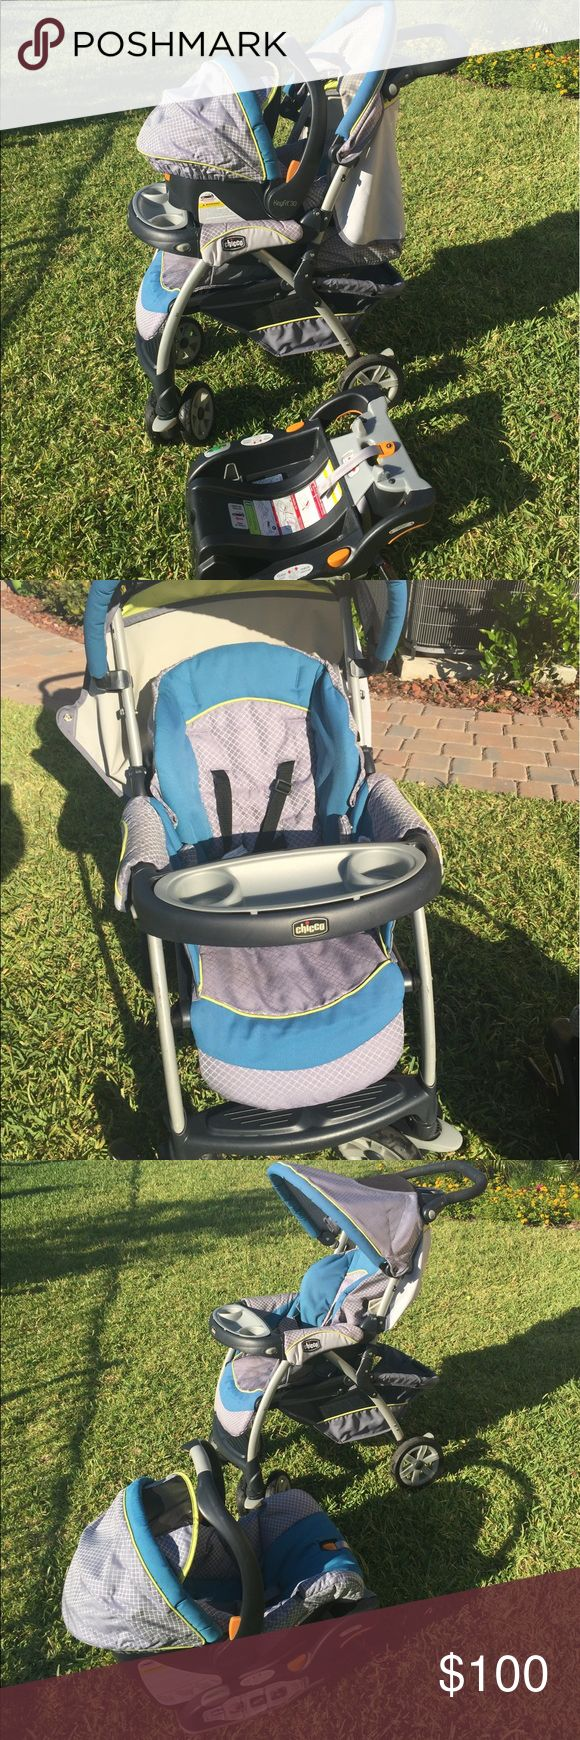 Chicco Stroller and Car Seat Beautiful chicco Stroller, Car Seat and base for sale - in great condition! Other